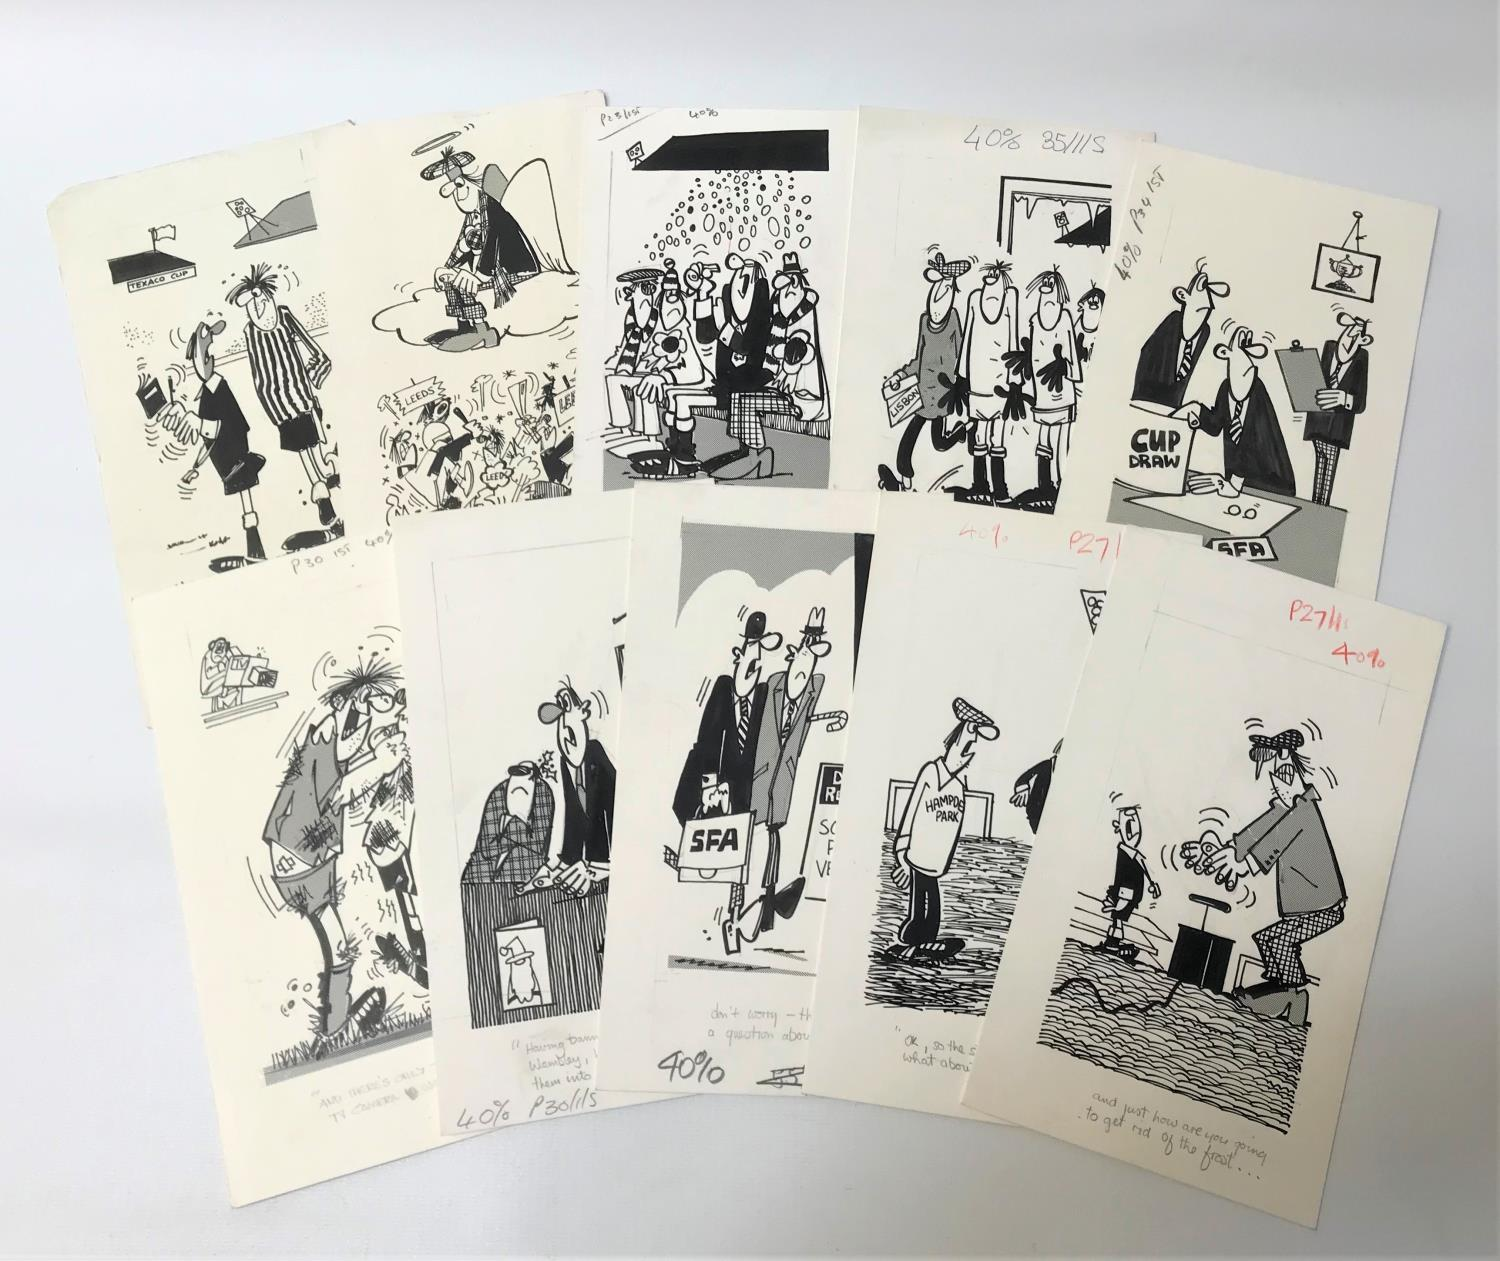 Lot 276 - ROD MCLEOD (Scottish cartoonist) ten ink drawings, late 1970/early 1980s, Football related, pencil